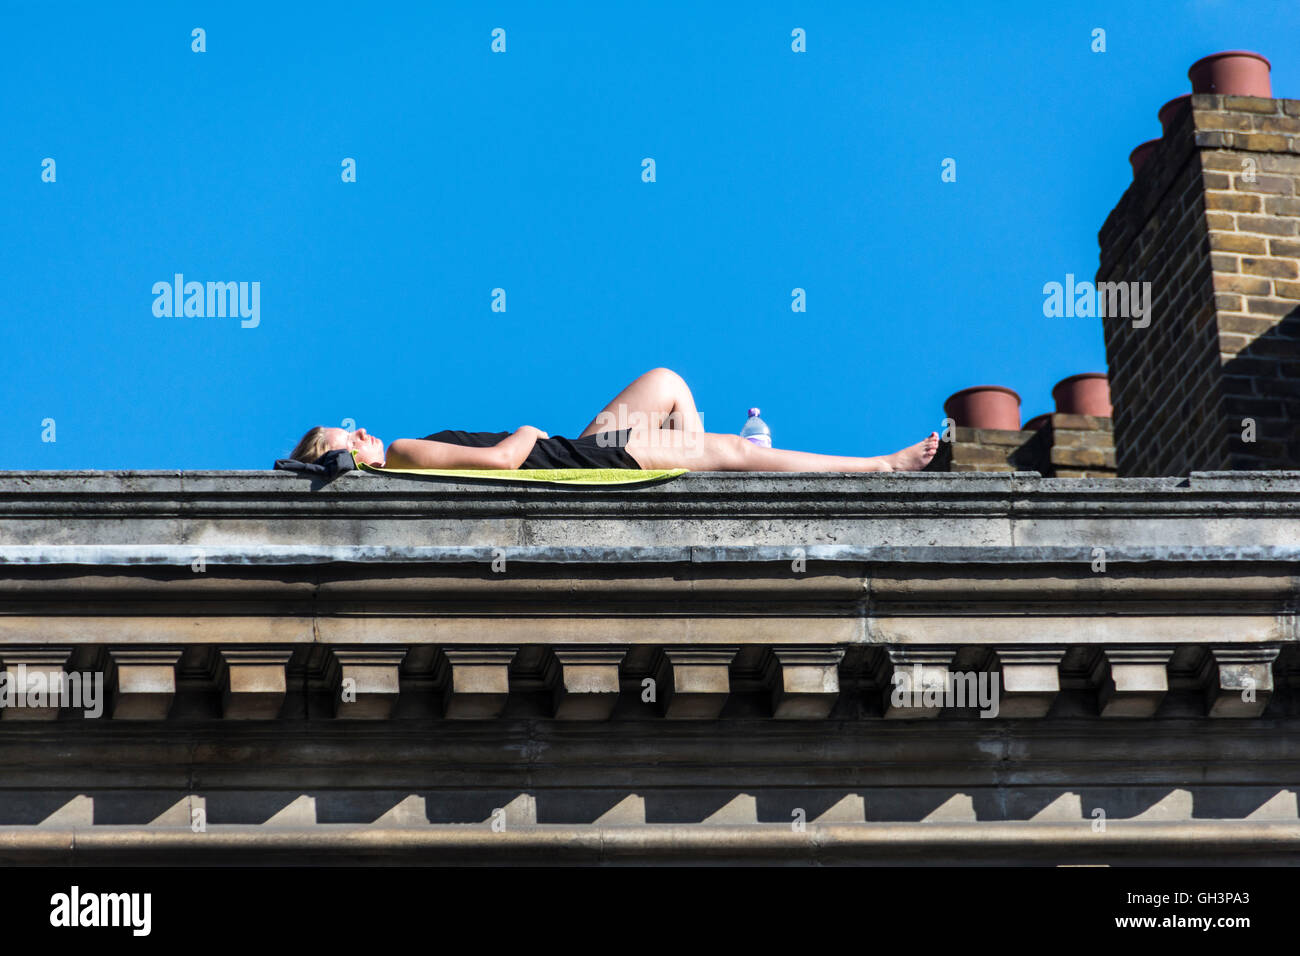 London, England, UK: A woman sunbathing on top of a roof near Borough Market in Southwark. - Stock Image